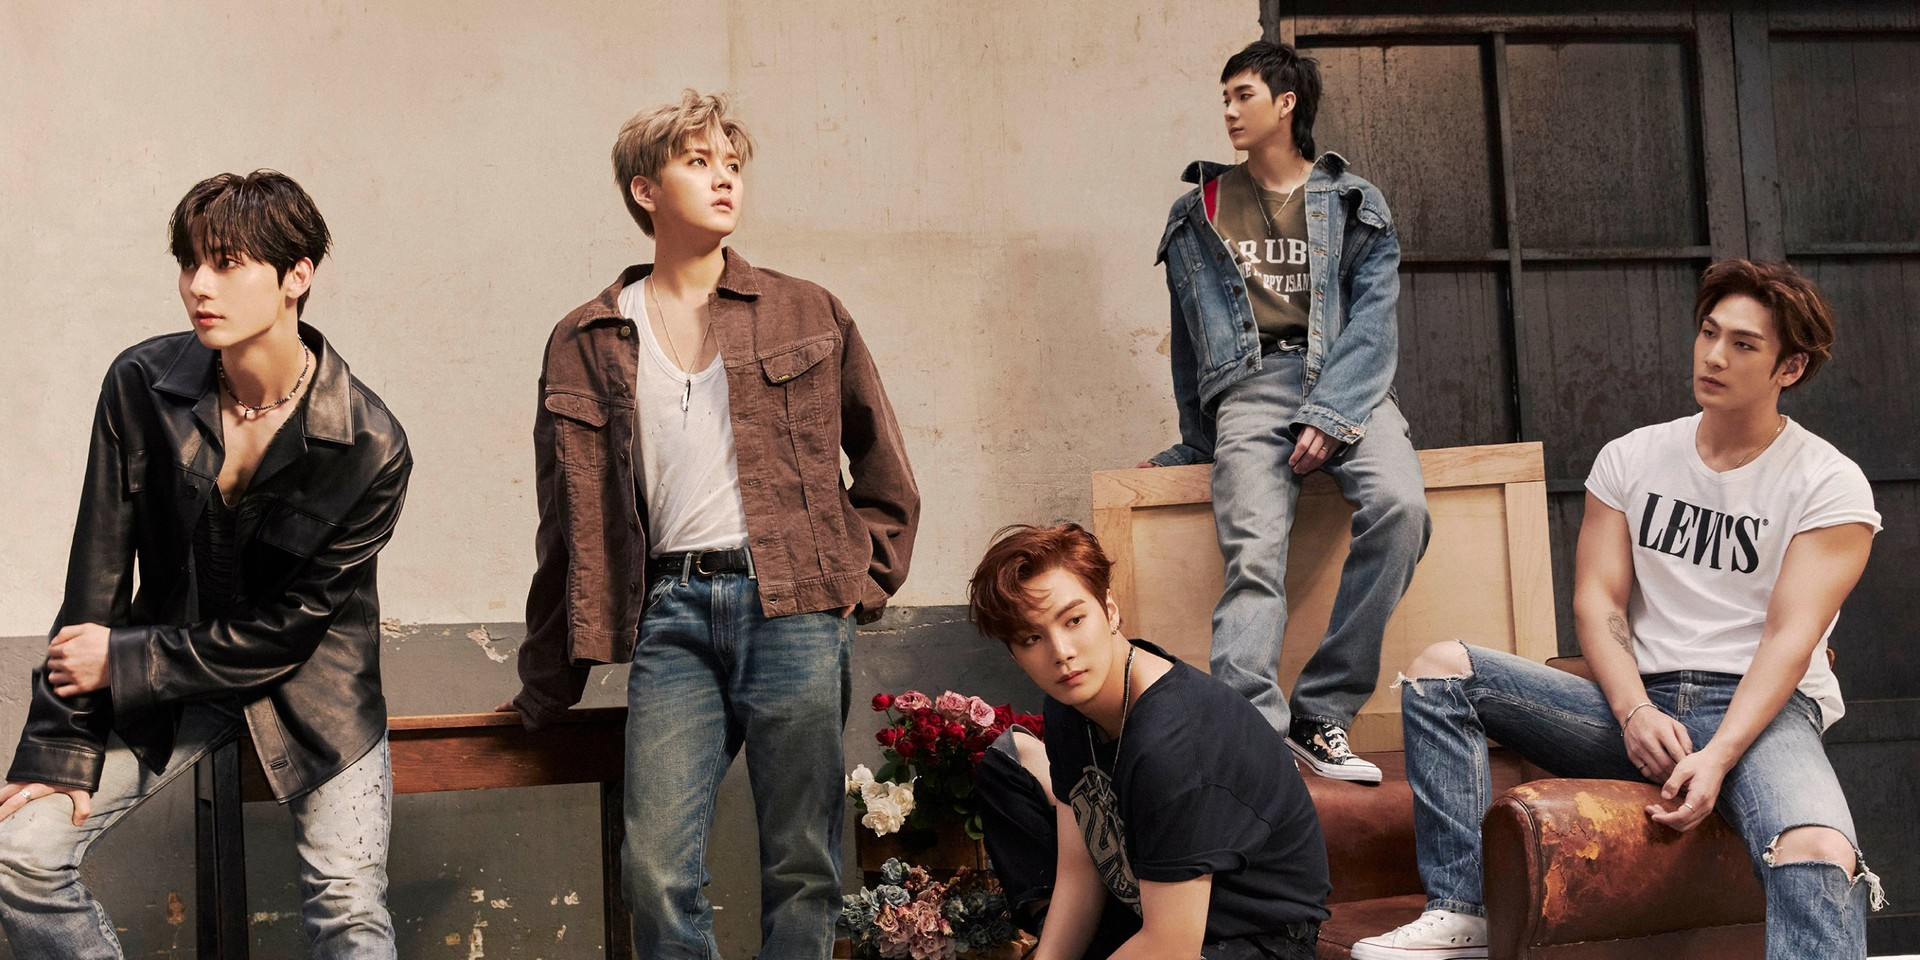 NU'EST showcase almost a decade's worth of growth in their latest album 'Romanticize' – listen